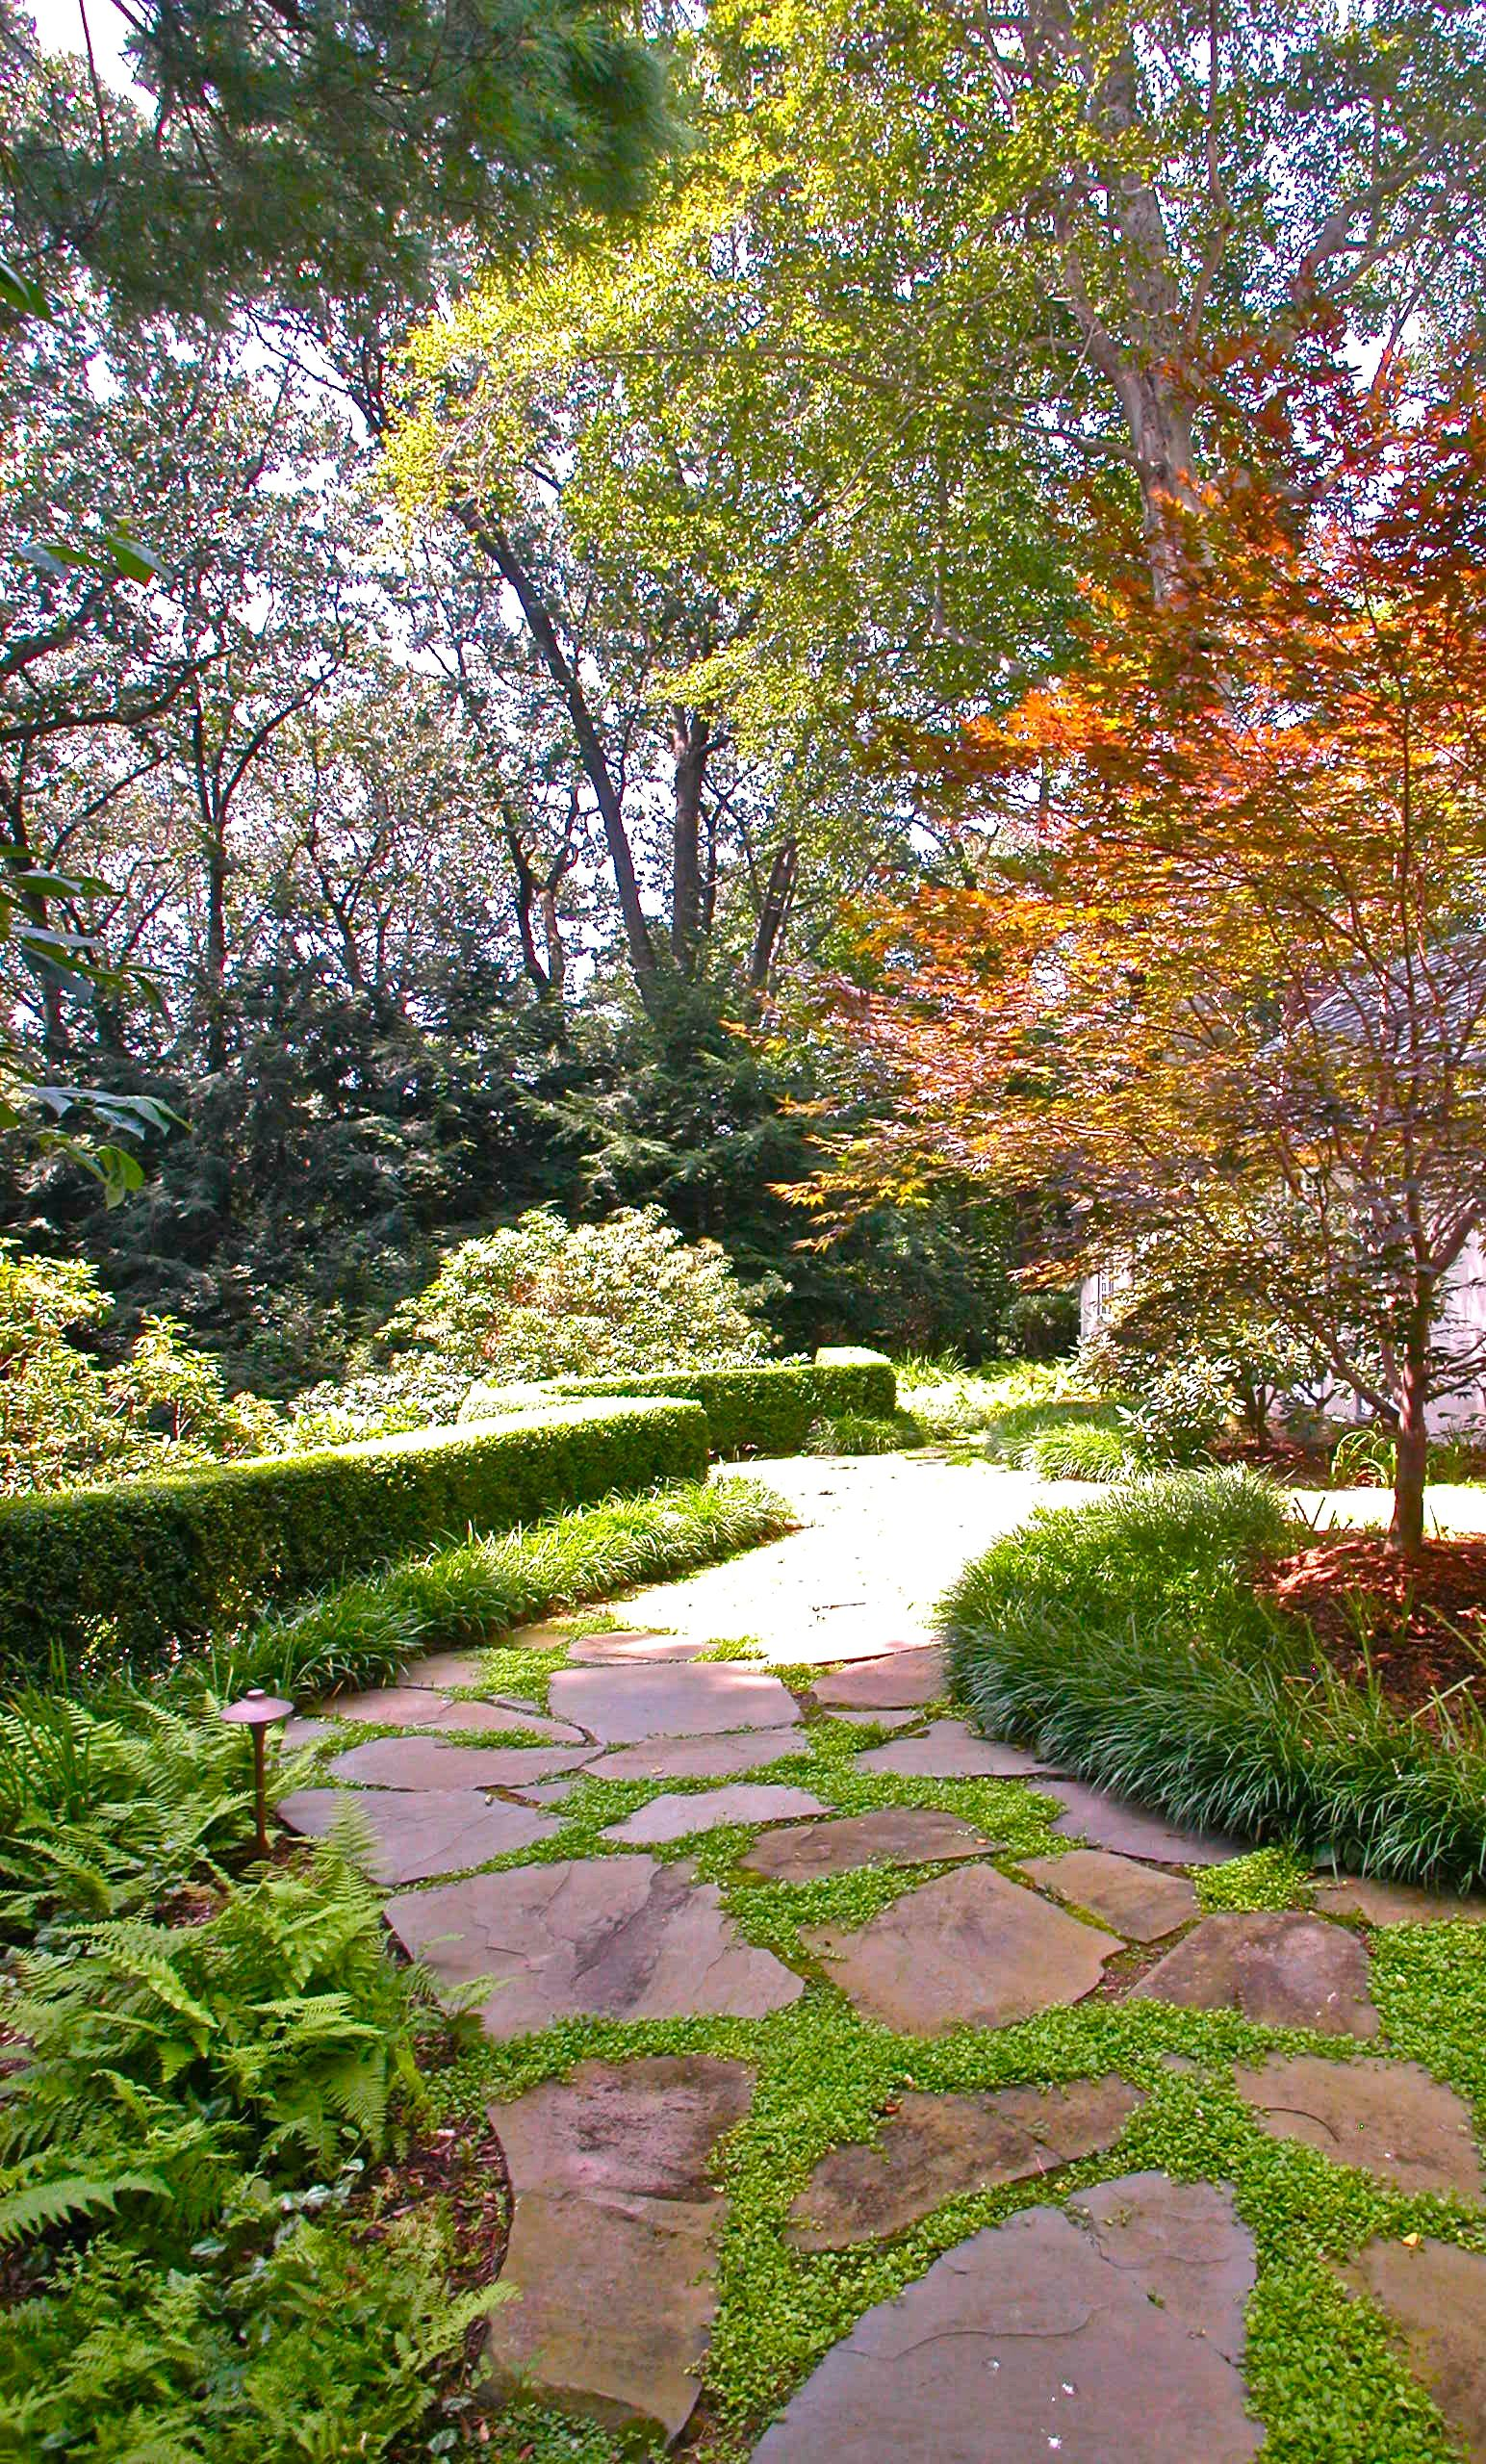 Broken Bluestone With Vegetated Joints Create A Wonderful Natural Entry Along With The Surrounding Plantings Of With Images Rock Garden Design Garden Images Garden Stones